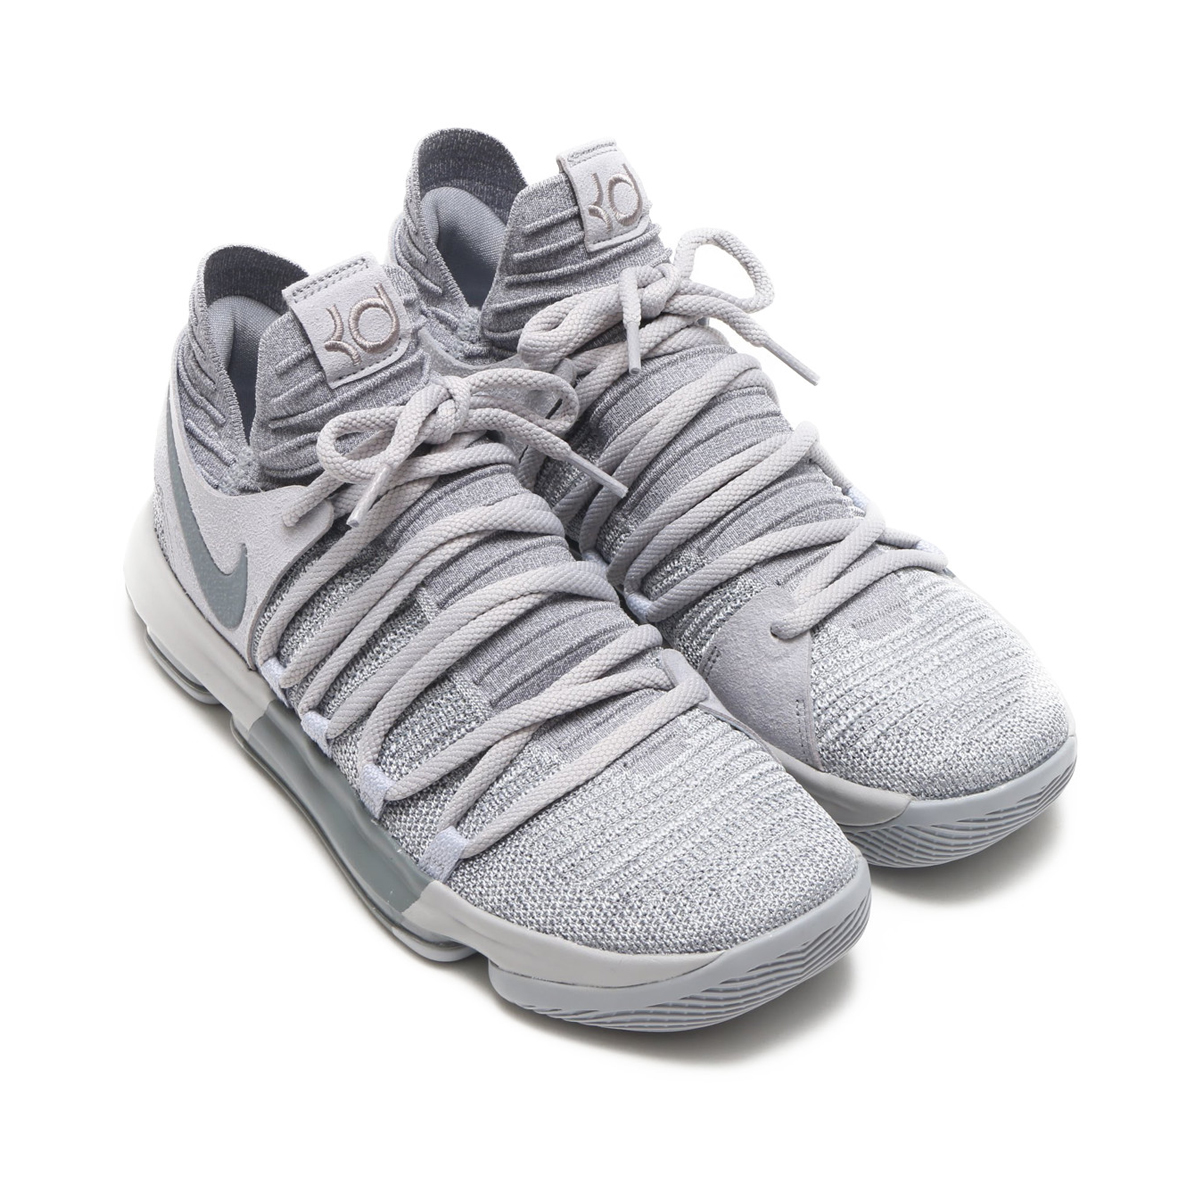 best deals on ded2d 6ba3c NIKE ZOOM KD10 EP (Nike zoom KD 10 EP) (WOLF GREY COOL GREY) 18SP-S